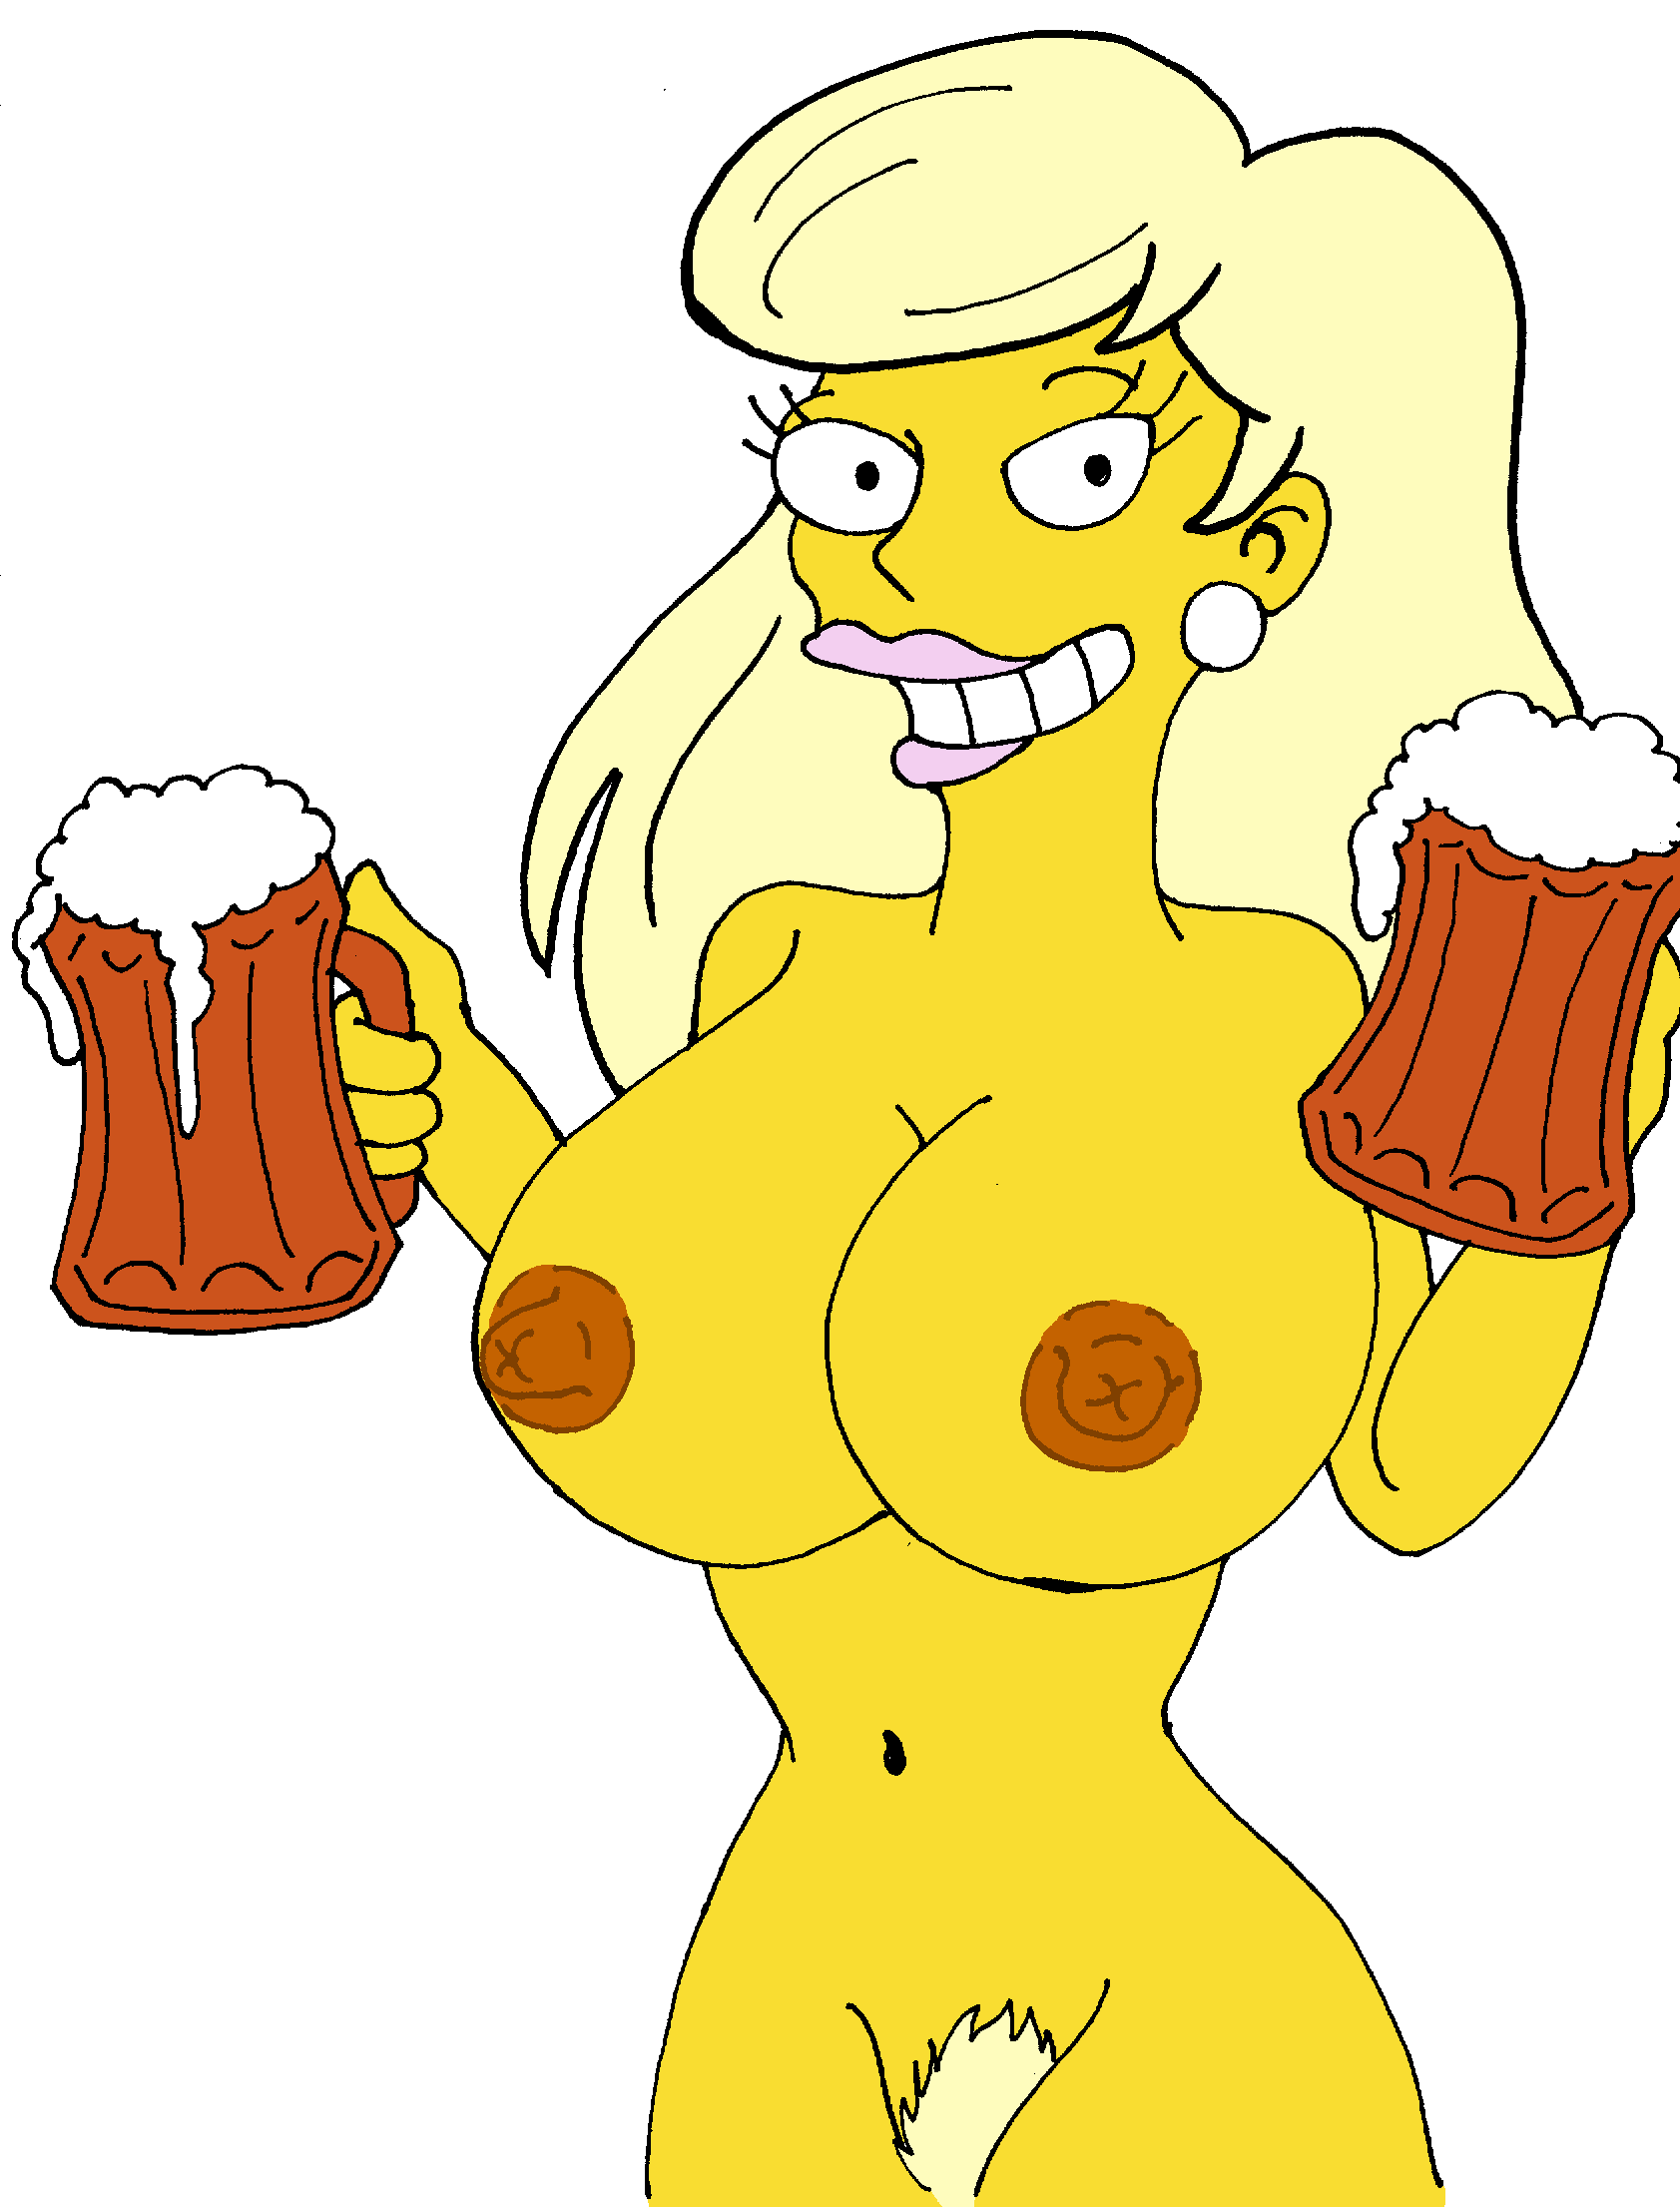 marge the naked simpsons from Natalie portman nipples star wars